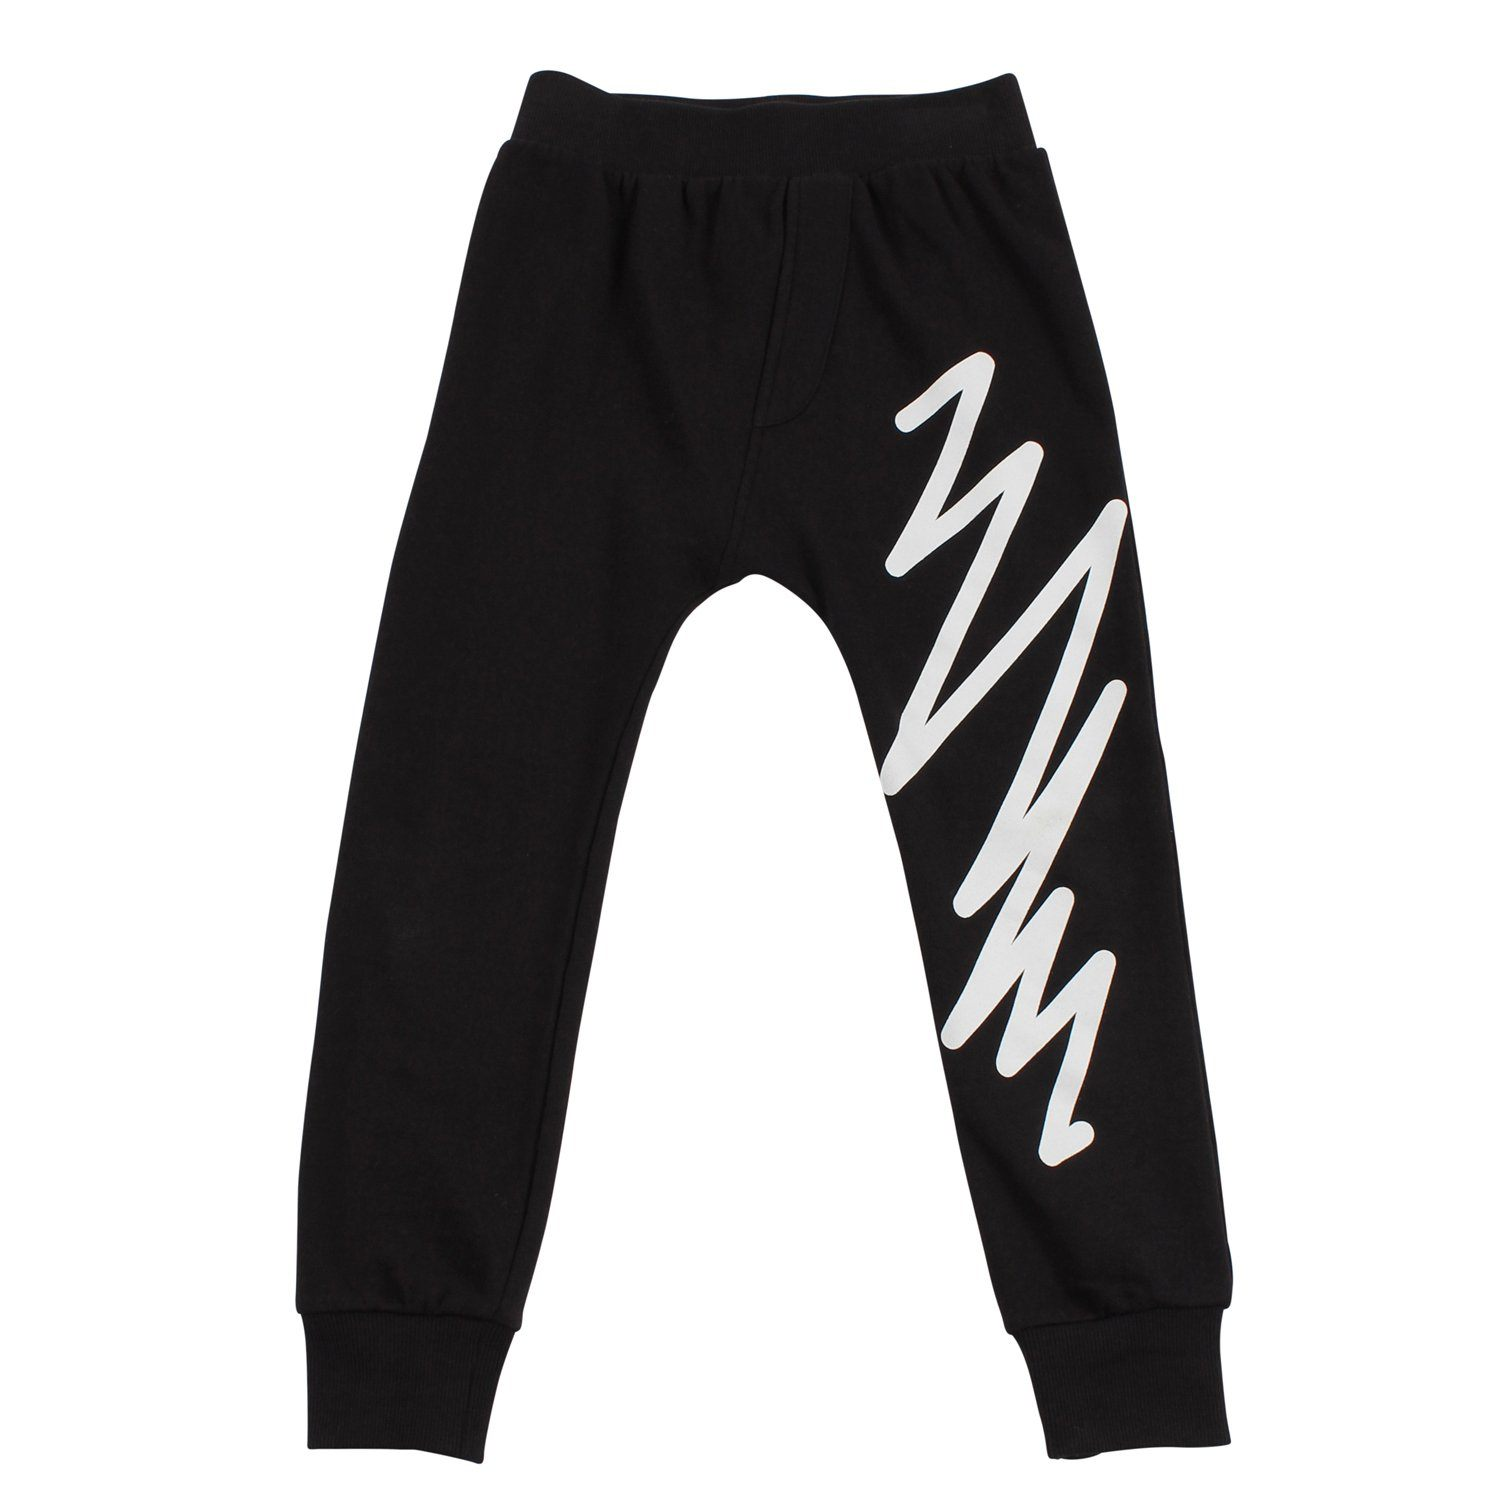 Jadded Line Sweatpants